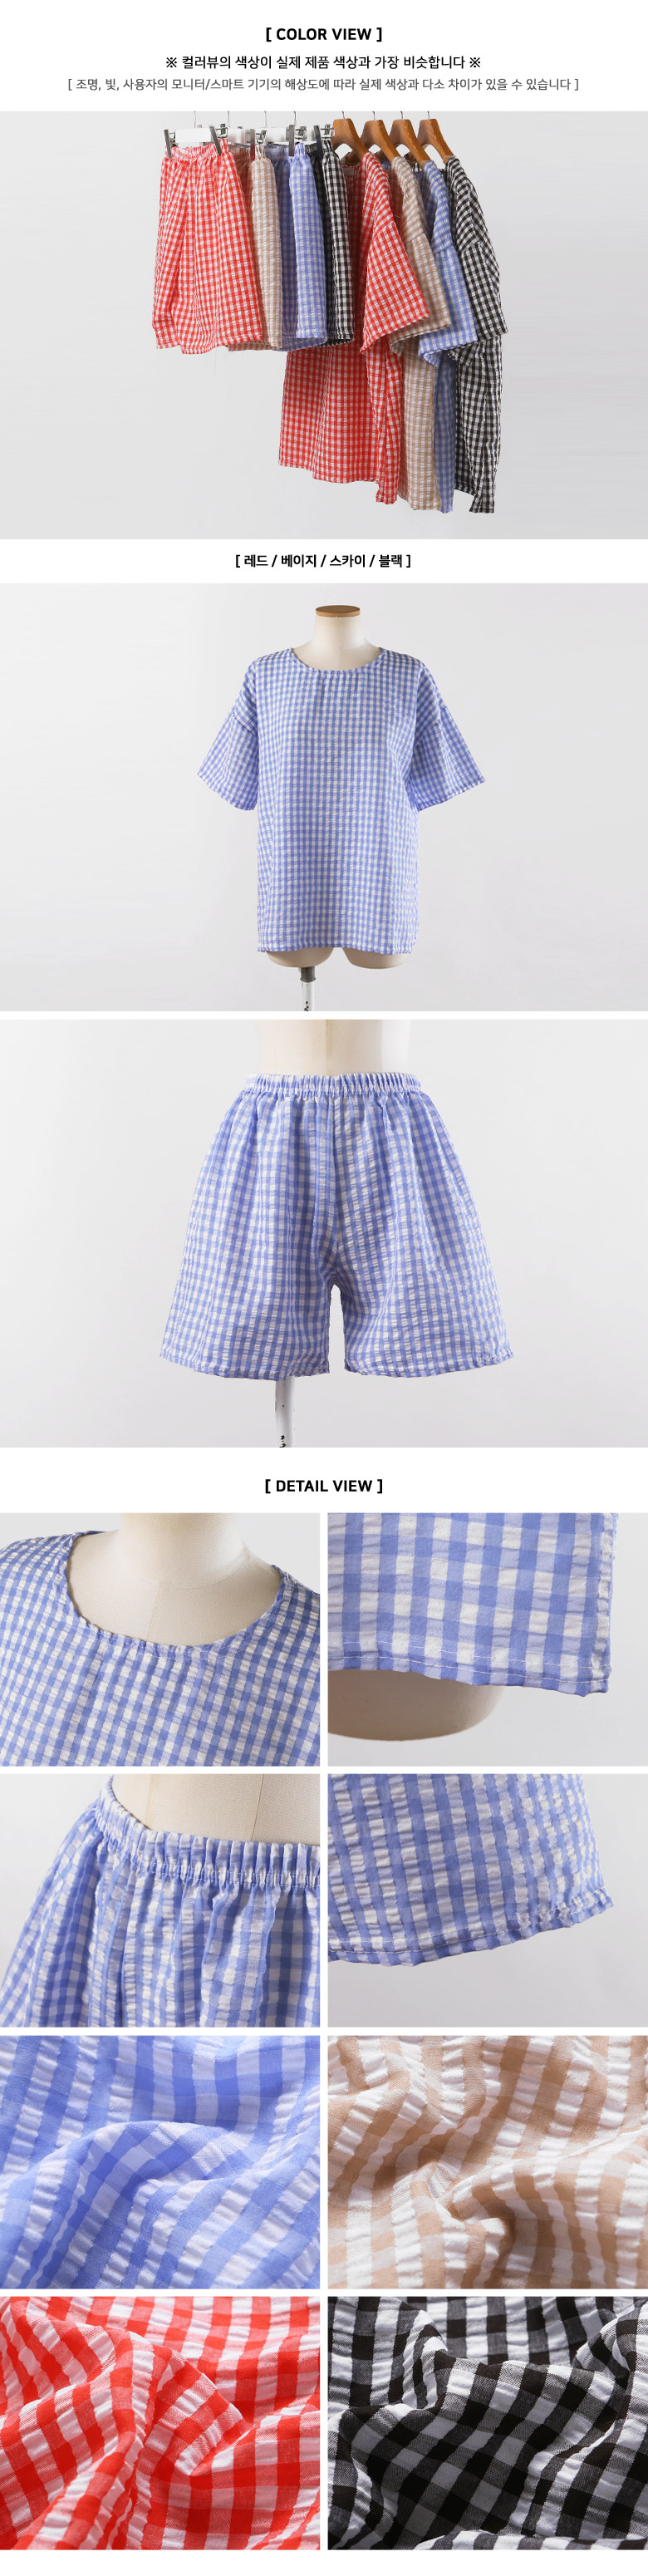 All Day Sears Short Sleeve Two Piece